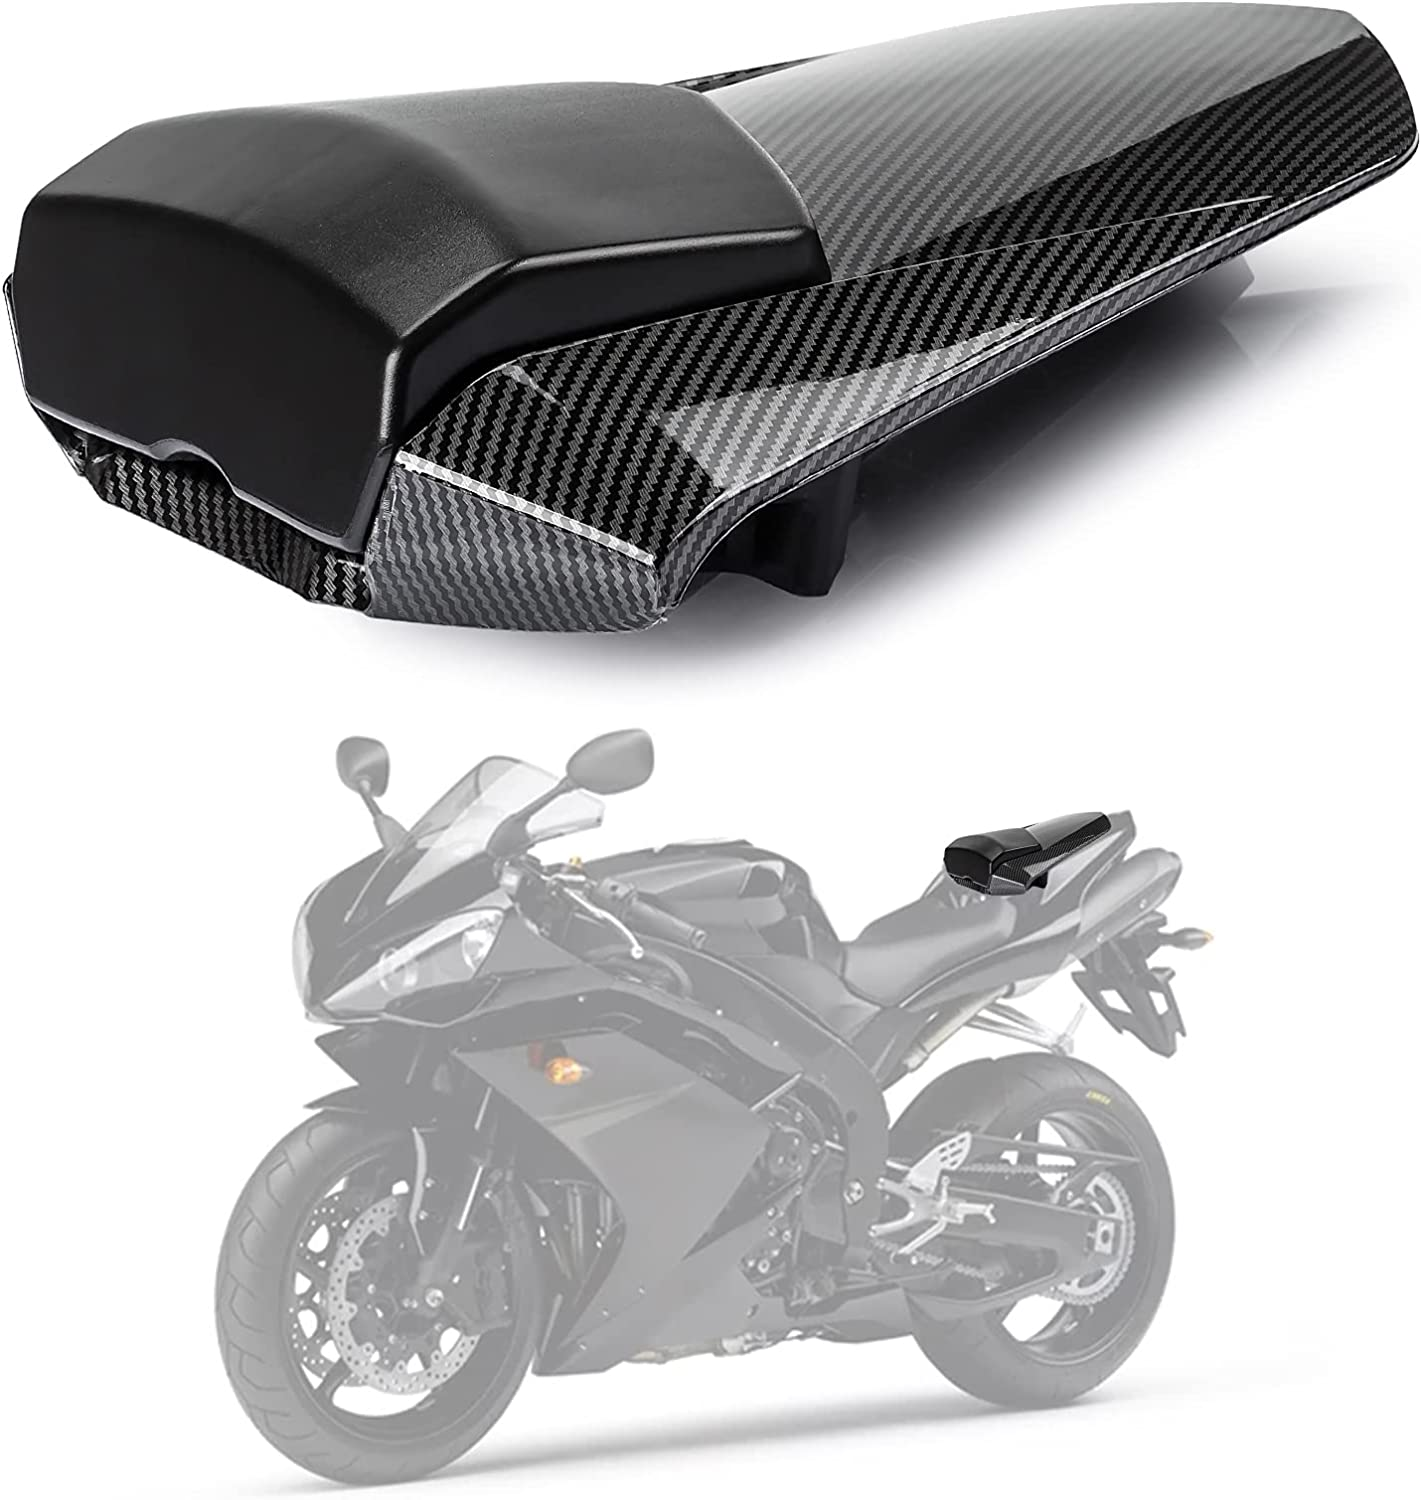 Details about  /New ABS Motorcycle Rear Seat Cover Cowl For 2009-2014 Yamaha YZF-R1